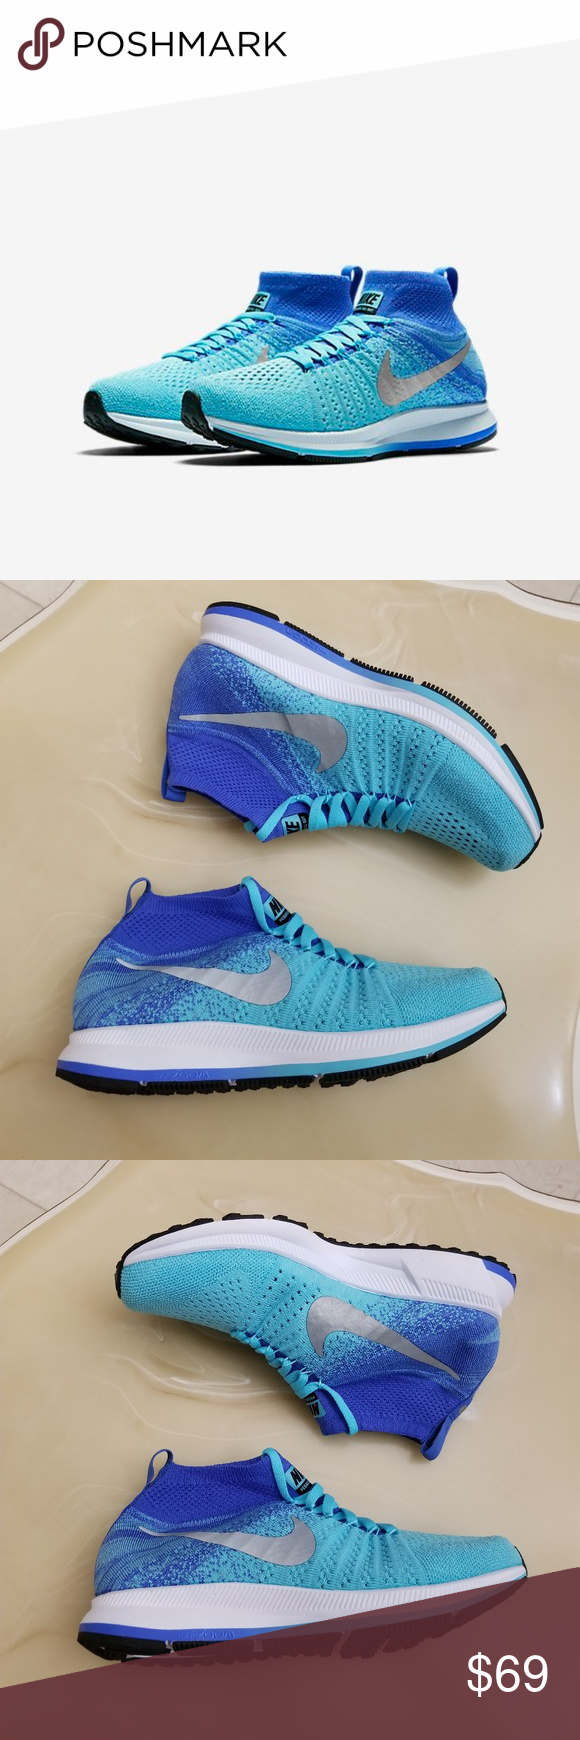 low priced 5455b edac2 Nike Zoom Pegasus All Out Flyknit ~ Firm Price - No Offers ~ New Without  Box, 100% Authentic, Guaranteed Nike Zoom Pegasus All Out Flyknit Kids  Youth Size ...